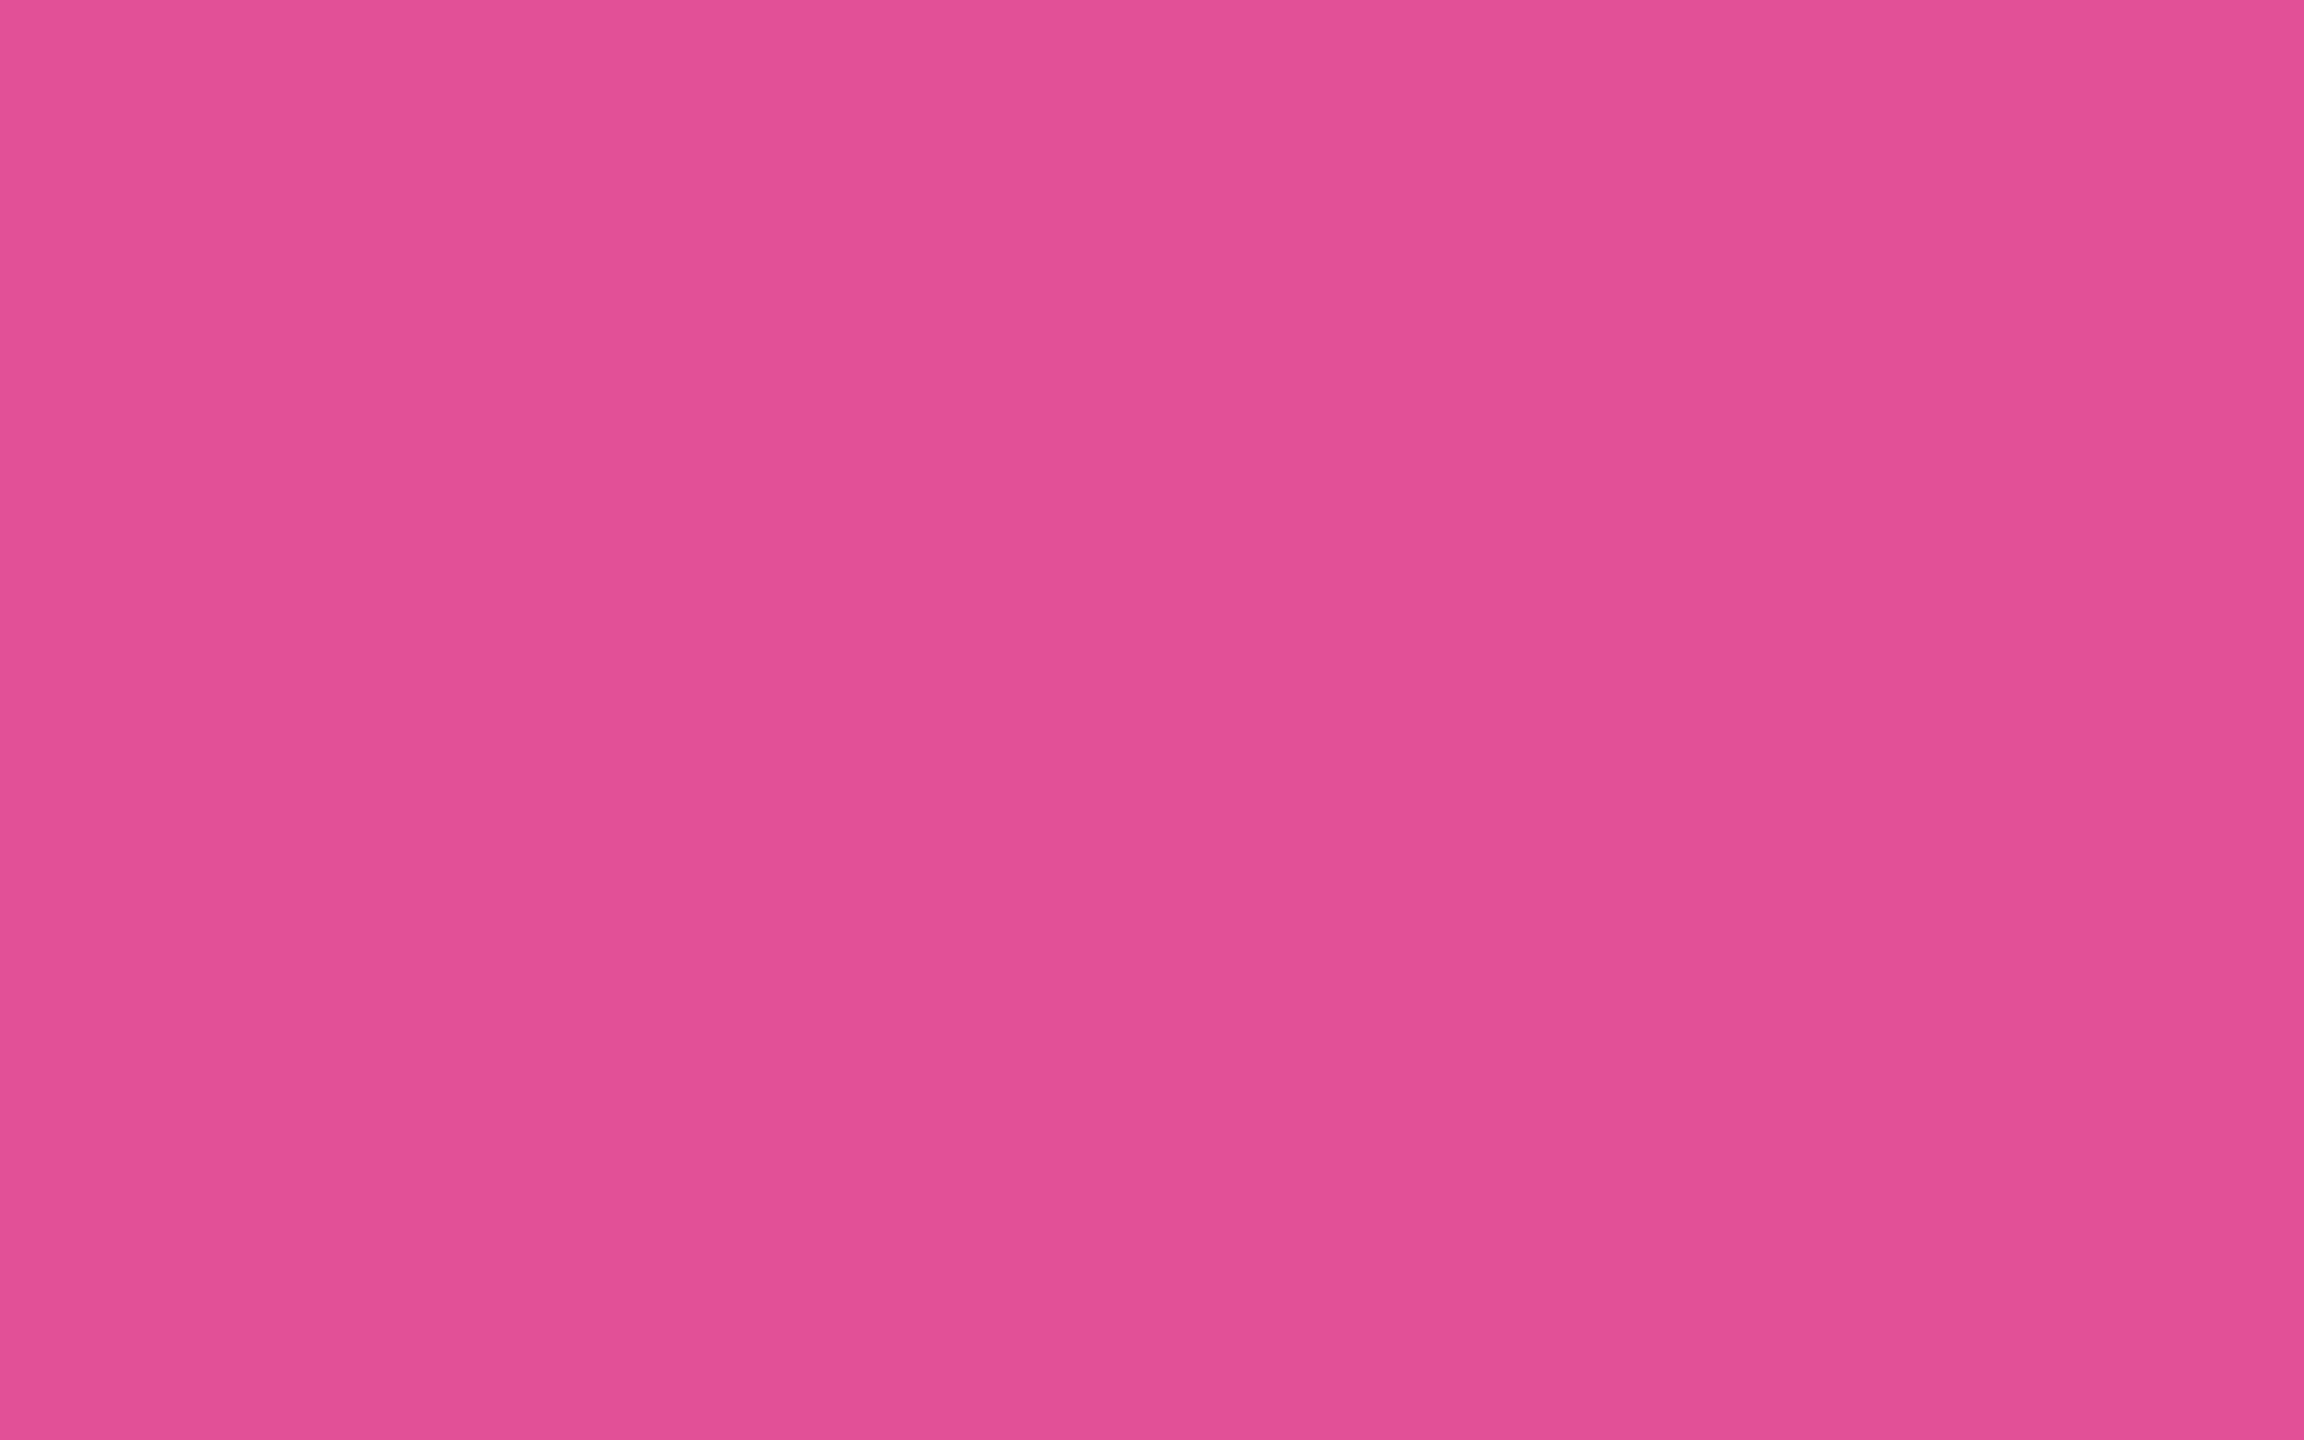 2304x1440 Raspberry Pink Solid Color Background